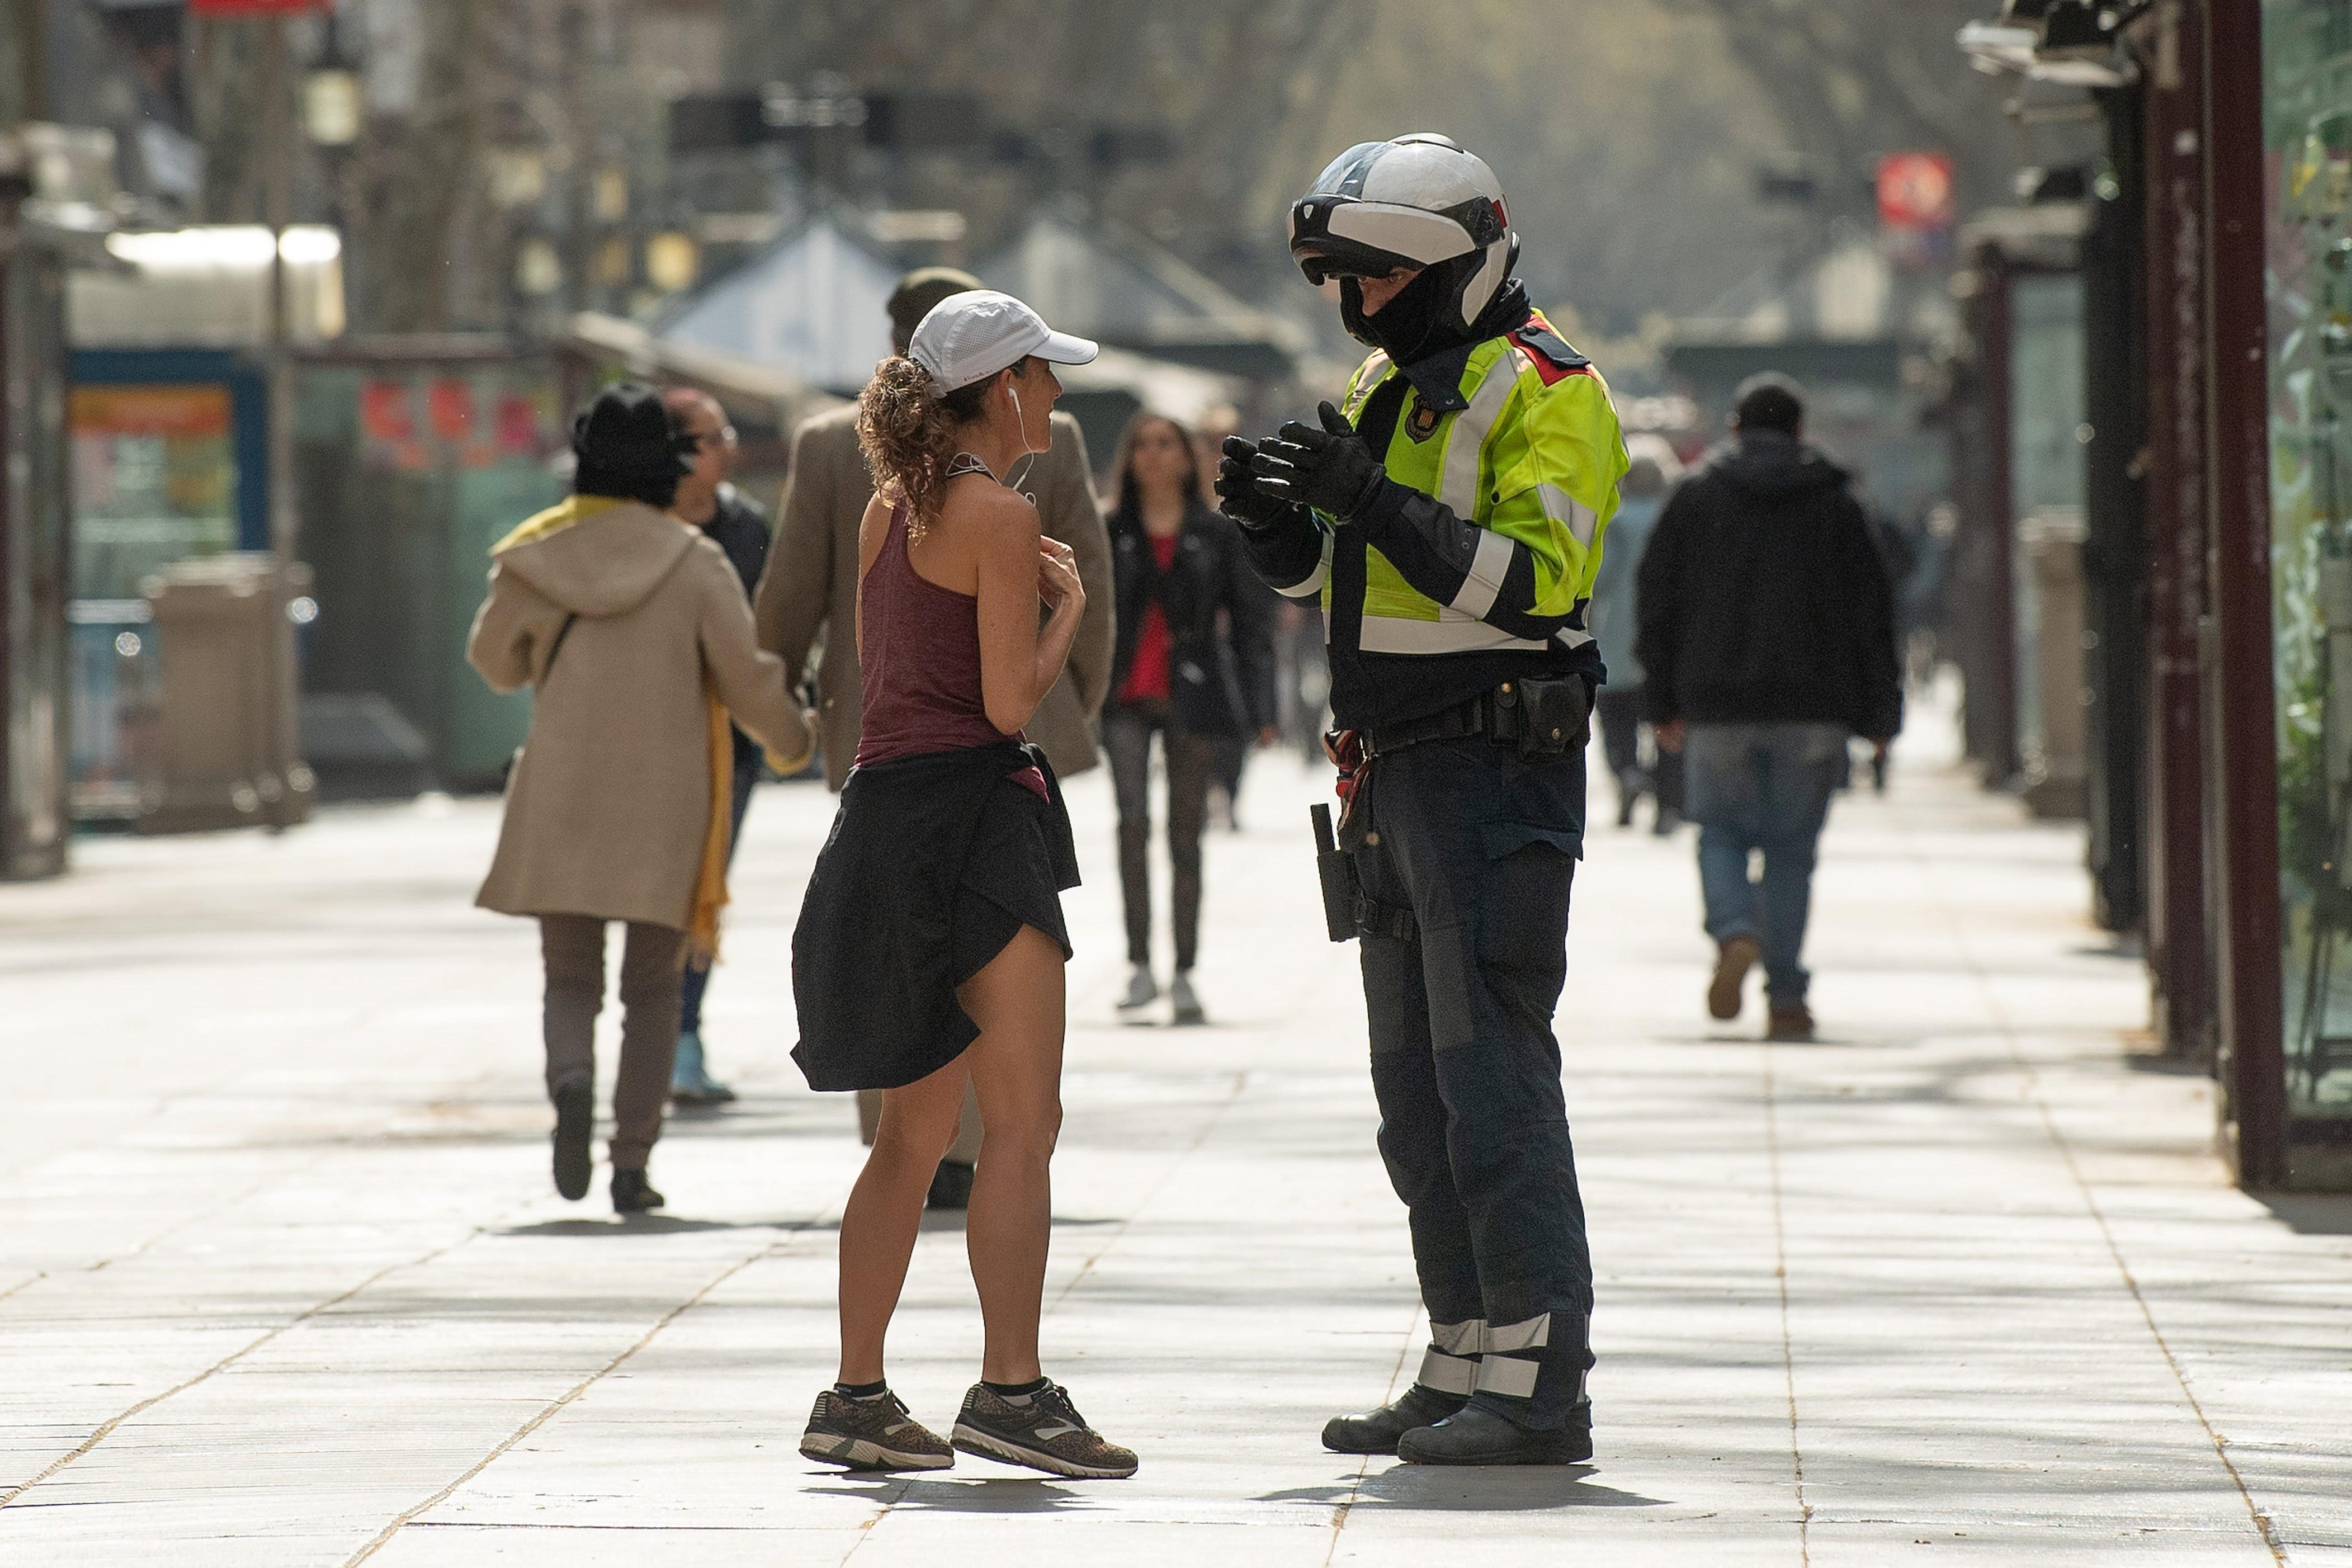 Slide 76 of 113: A Catalan Autonomous police officer, Mosso d'Esquadra, halts a woman who was jogging through Las Ramblas on March 15, 2020 in Barcelona, Spain. As part of the measures against the virus expansion the Government has declared a 15-day state of emergency which will come into effect today.